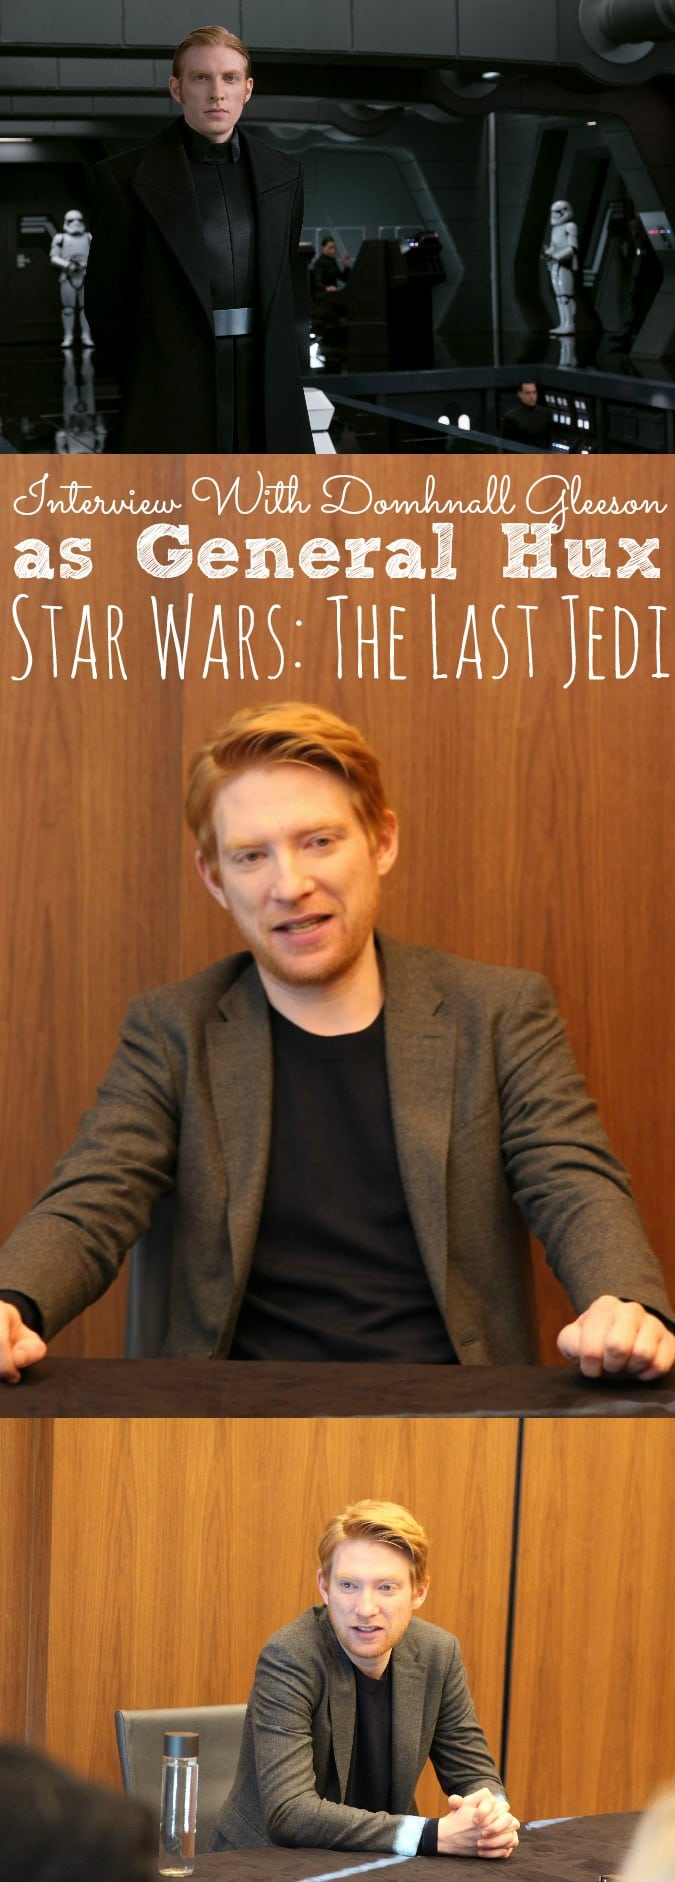 Interview With Domhnall Gleeson On His Role As General Hux in Star Wars: The Last Jedi #TheLastJediEvent - simplytodaylife.com